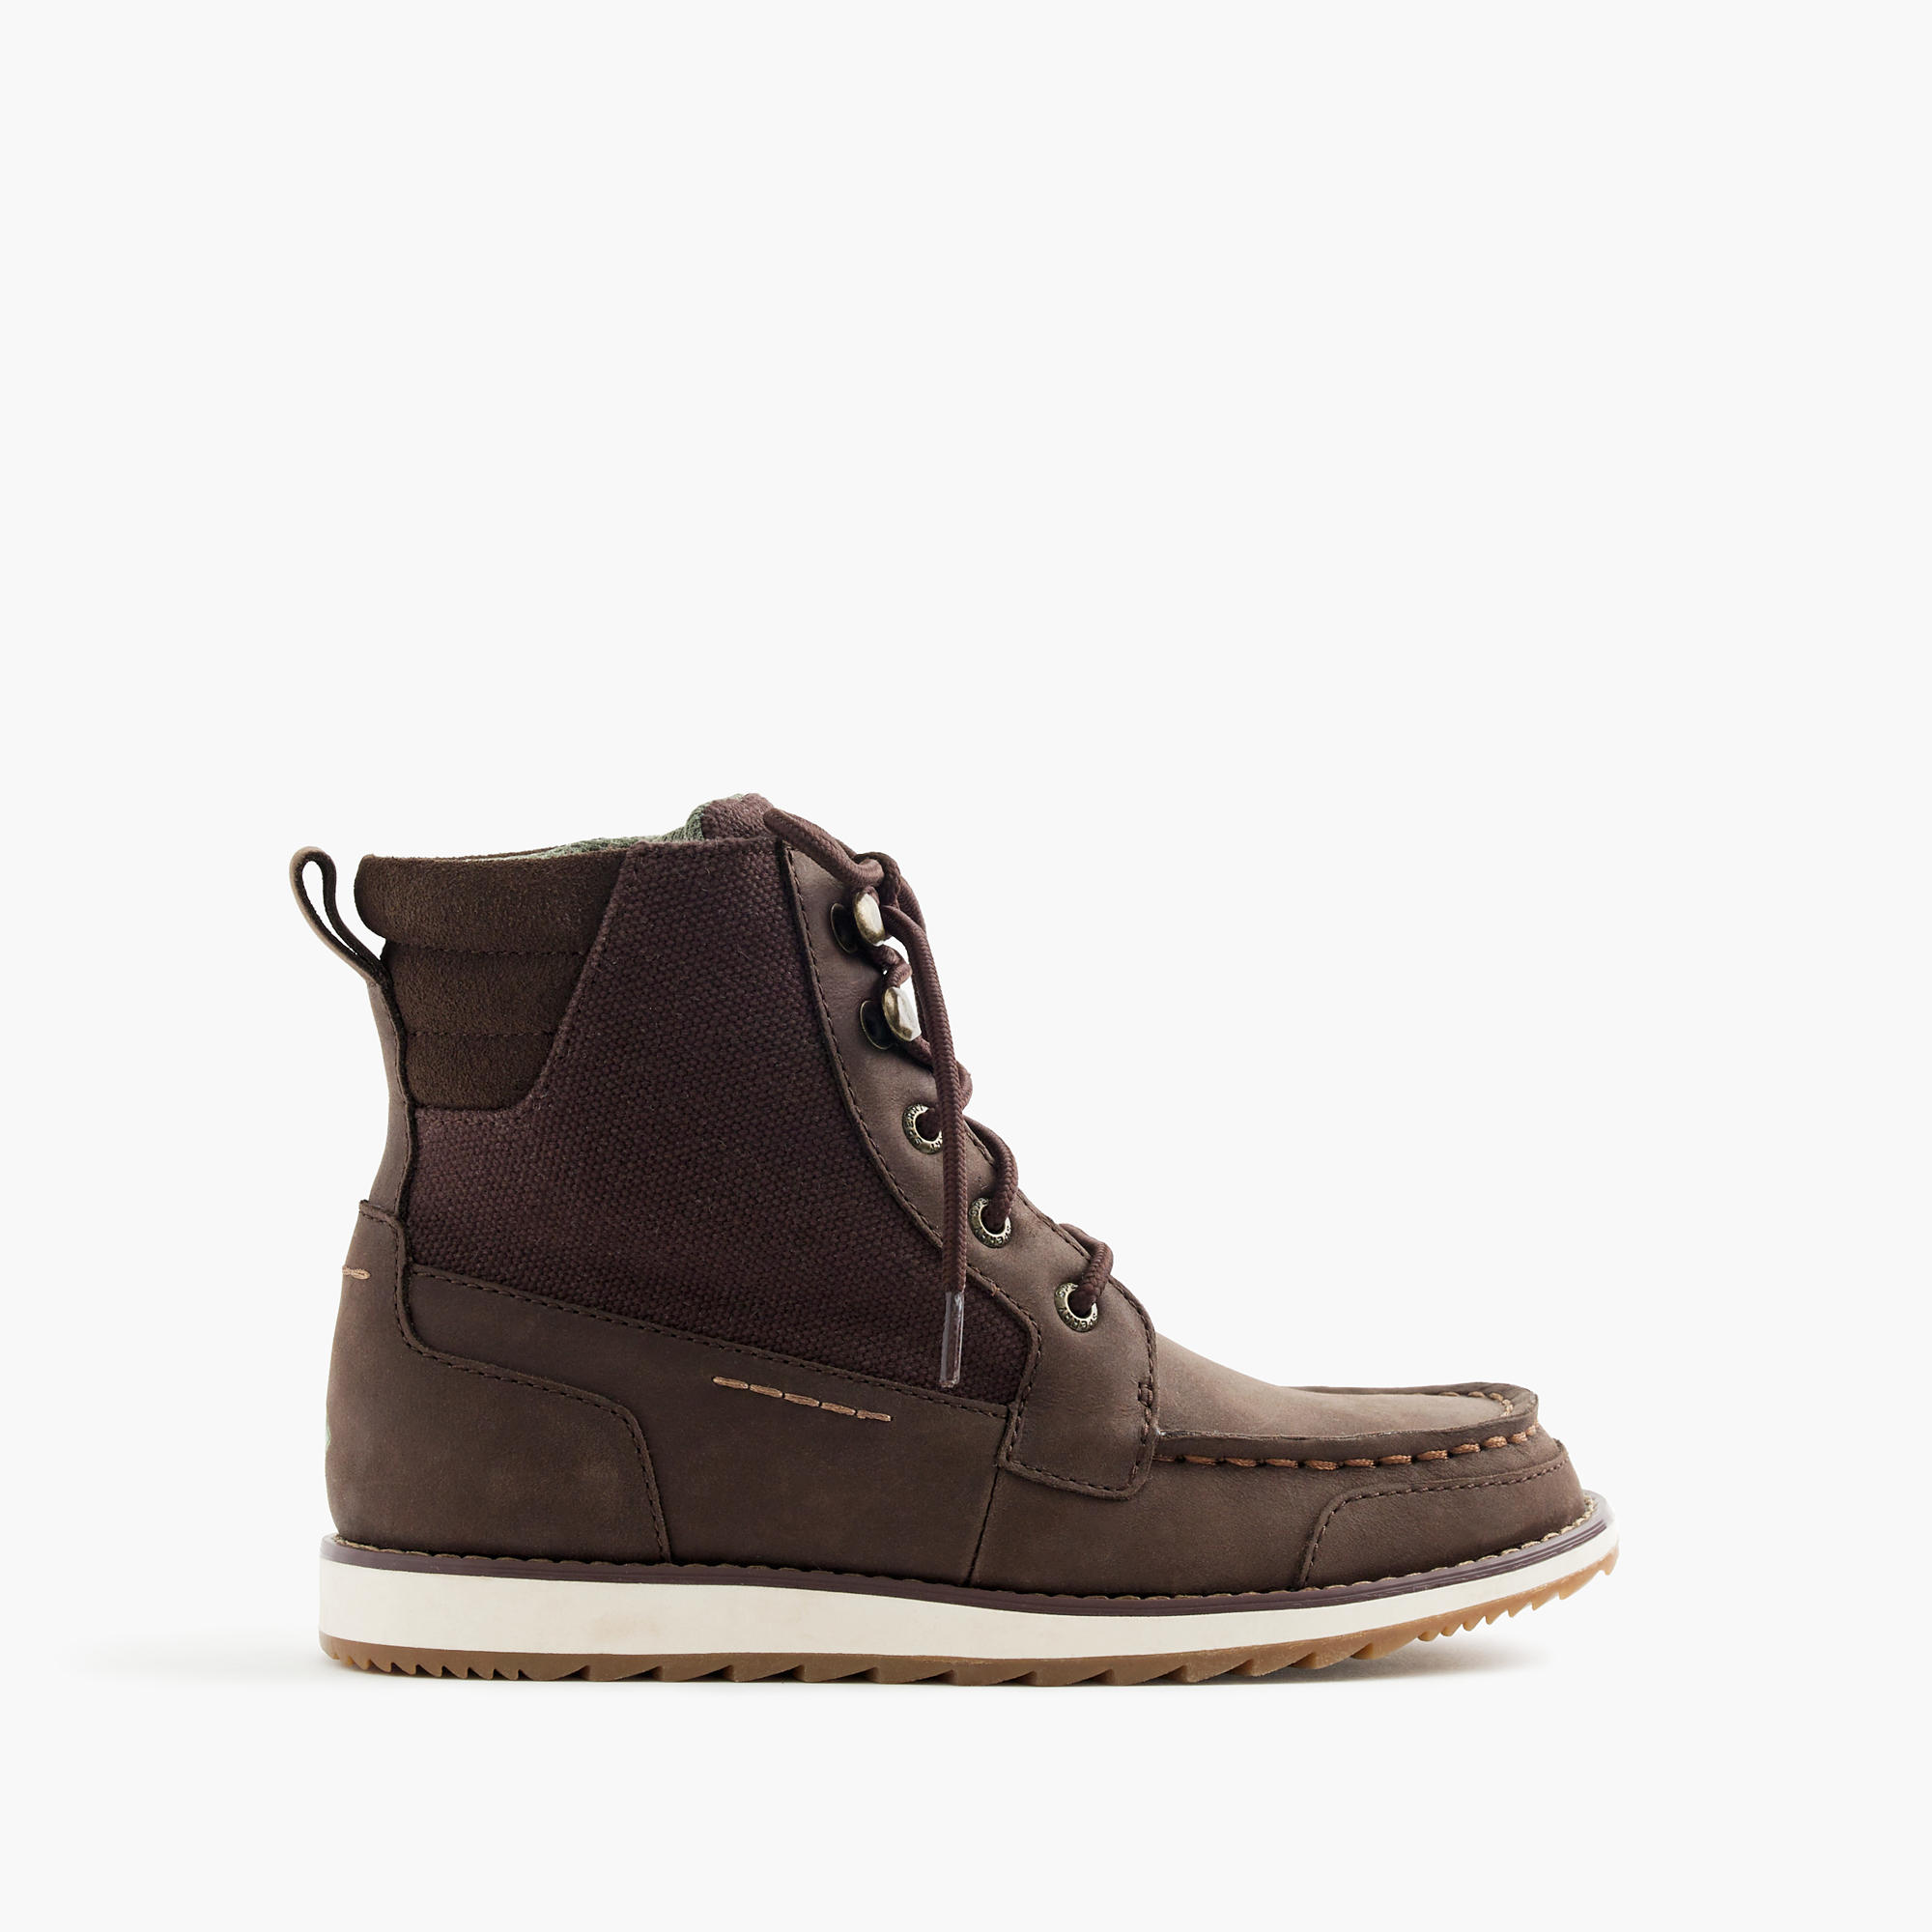 Kid Sperry For Crewcuts Dockyard Boots Boys Boots